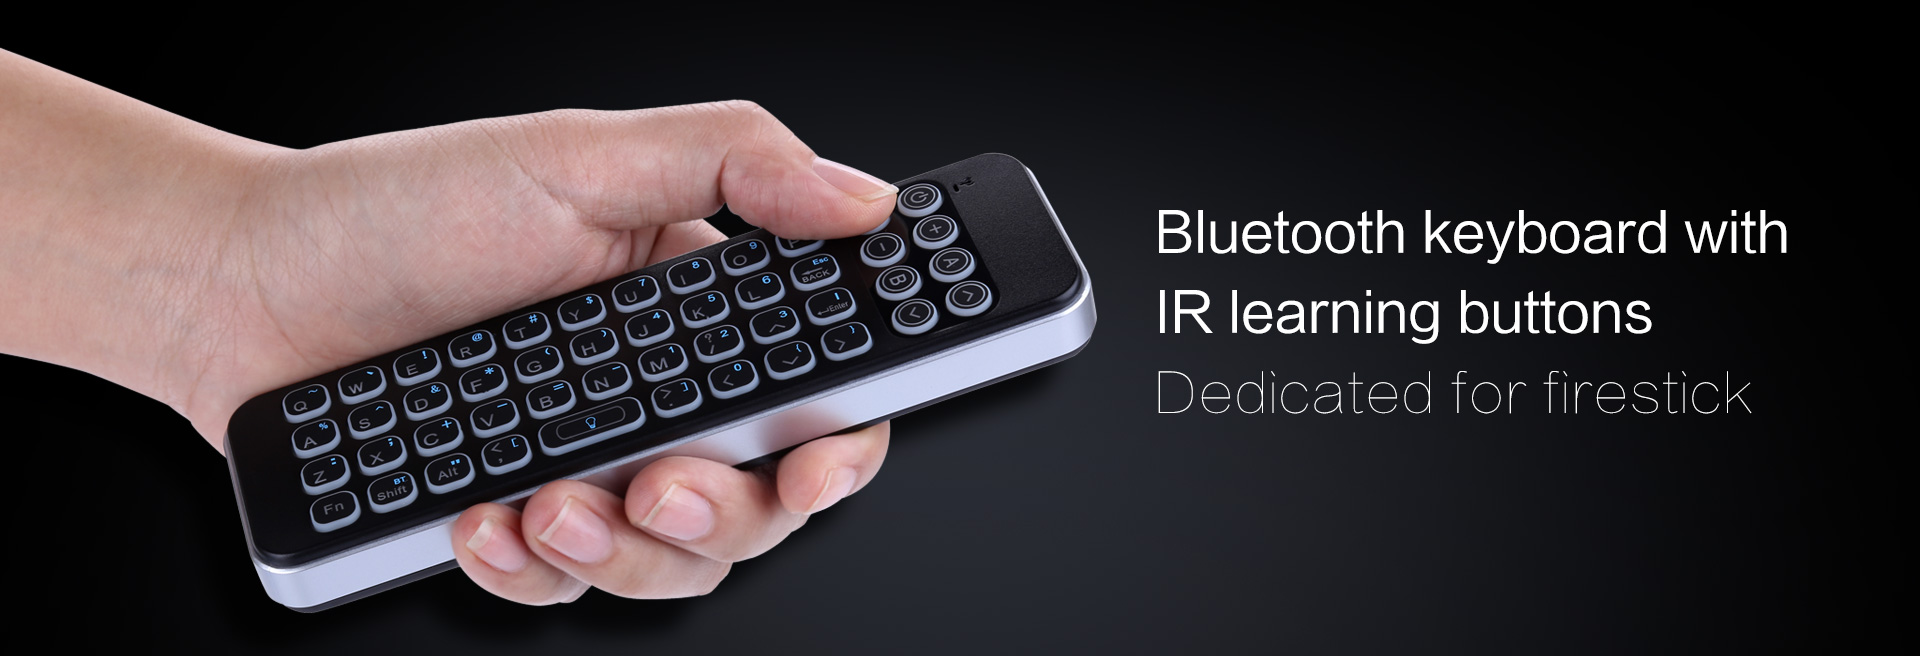 IR bluetooth keyboard for firestick